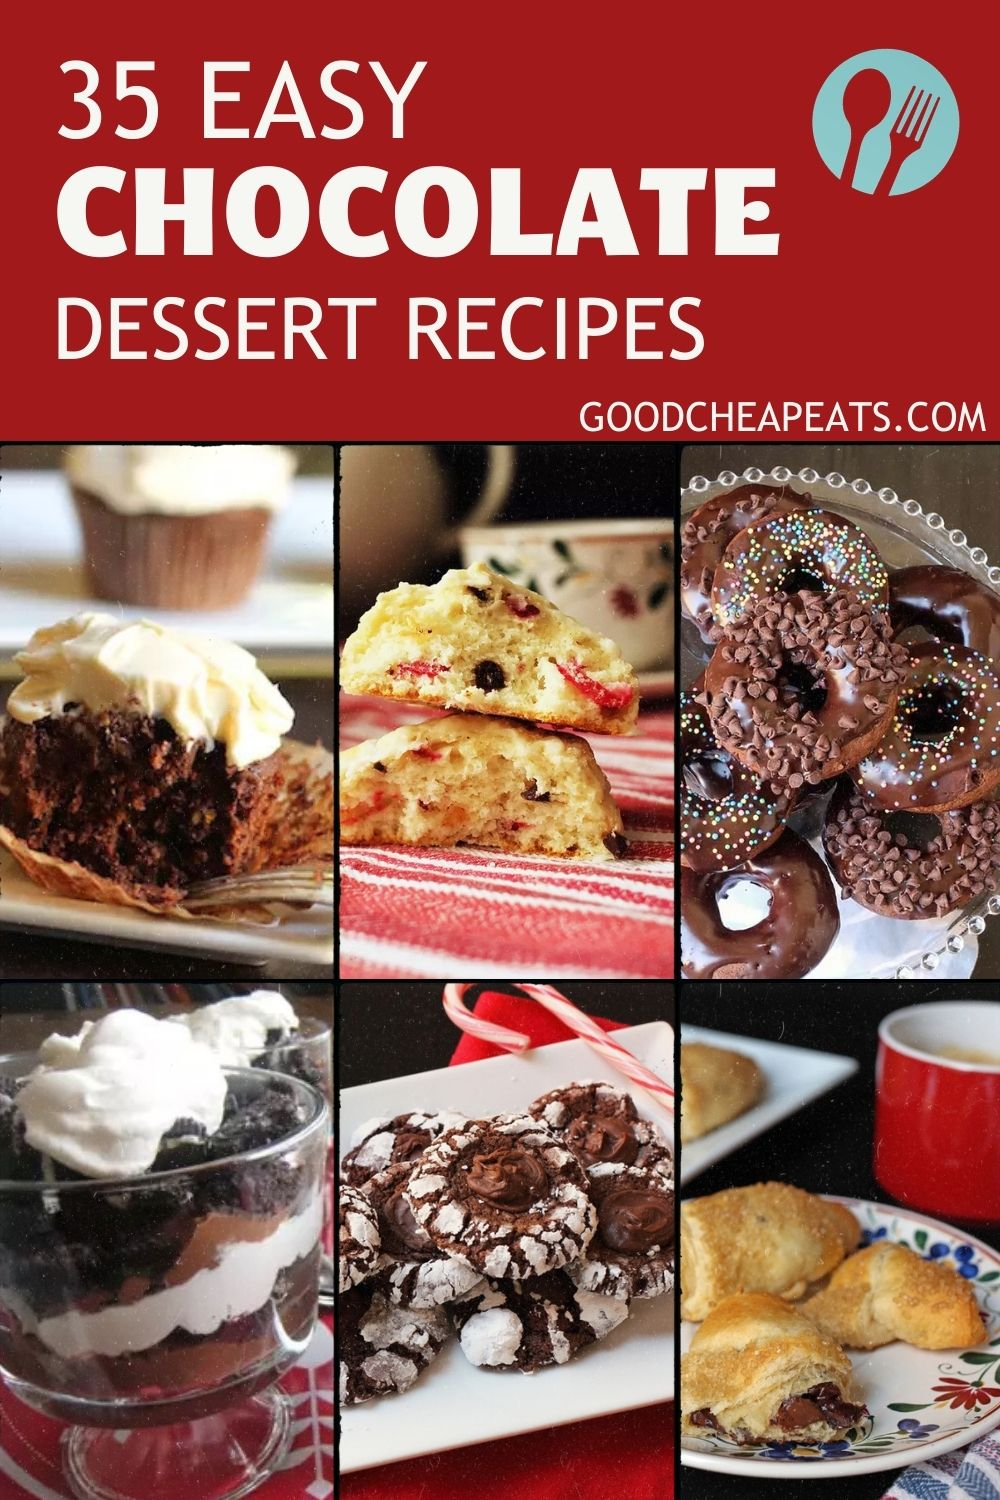 Pinterest image with chocolate desserts featured